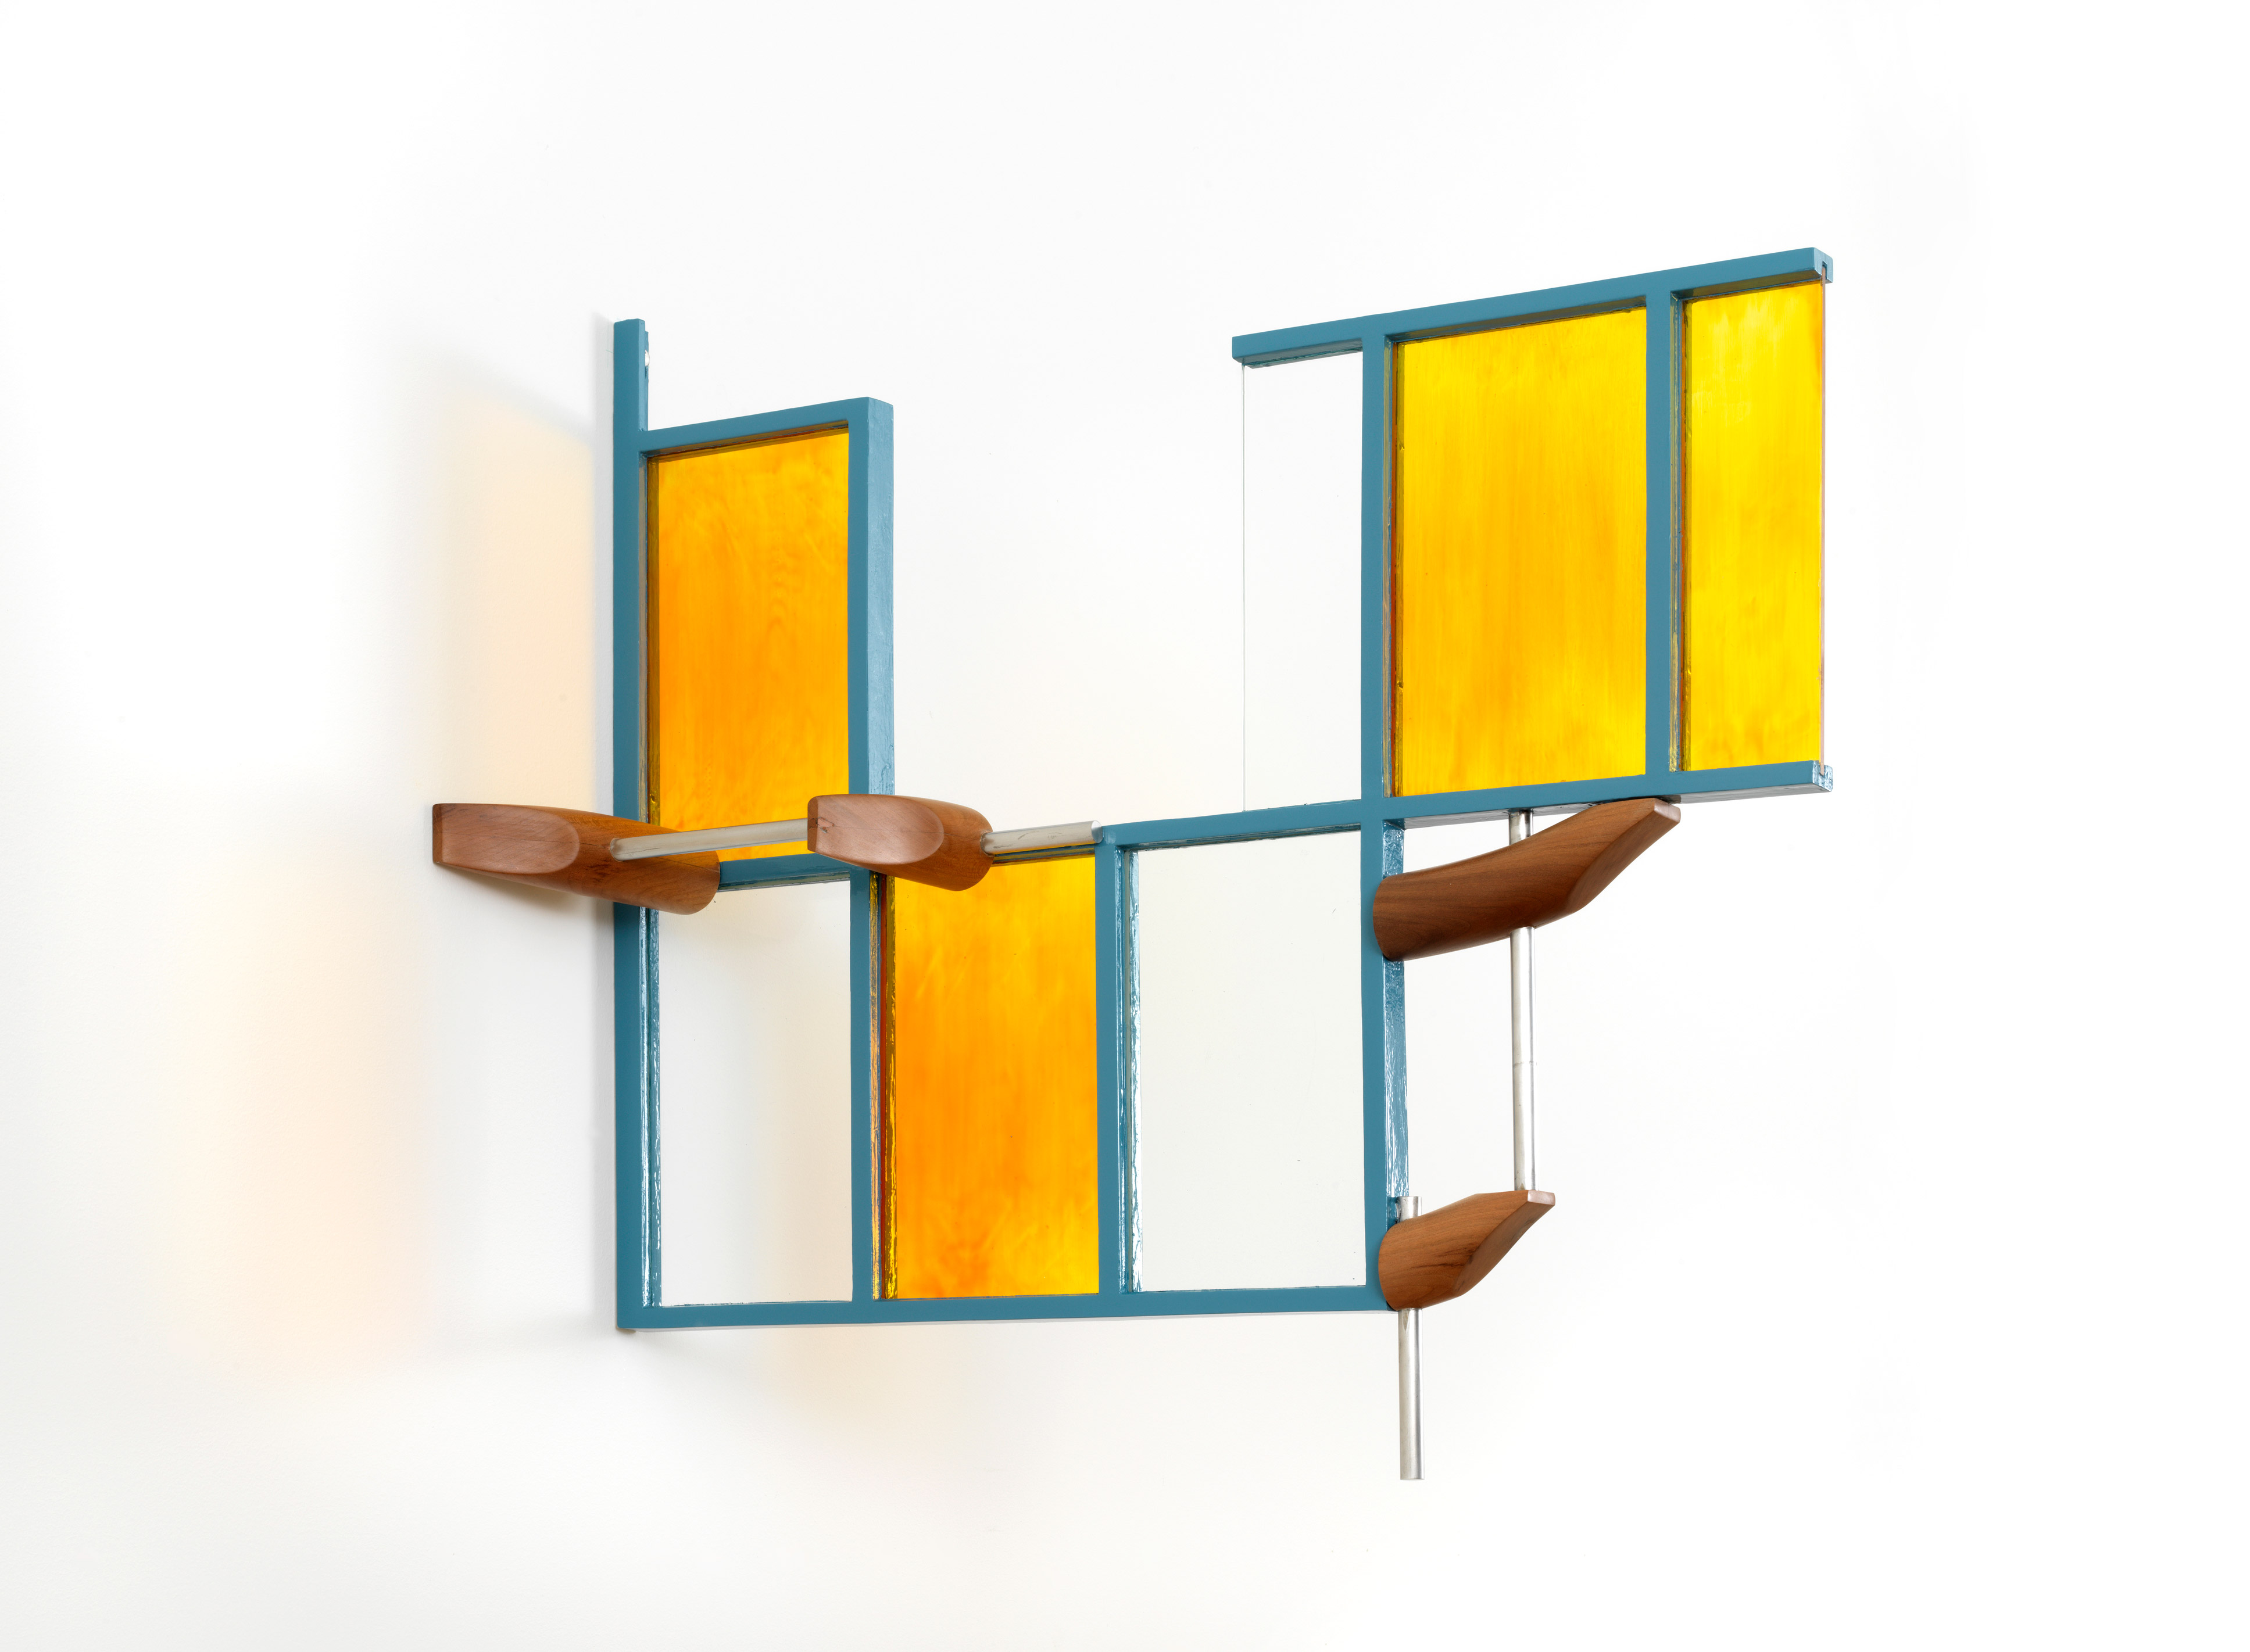 Sculpture of clear or gold quadrilaterals framed in blue, with glass rods attached to the sides, piercing curved cherrywood